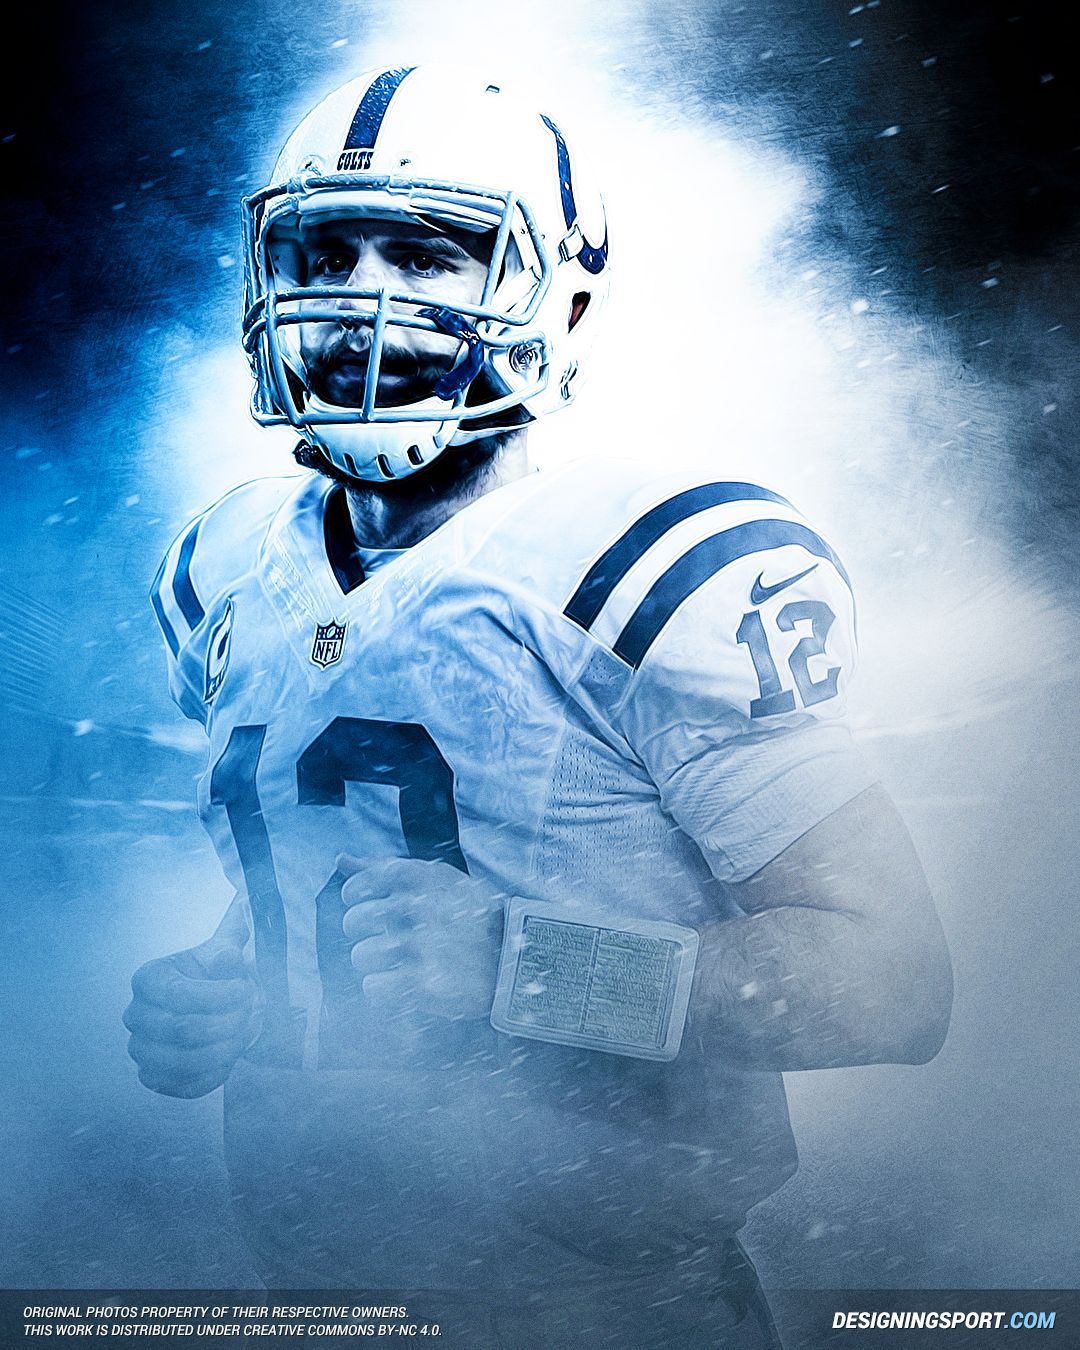 Andrew Luck Indianapolis Colts More & Andrew Luck Indianapolis Colts u2026 | Pinteresu2026 islam-shia.org